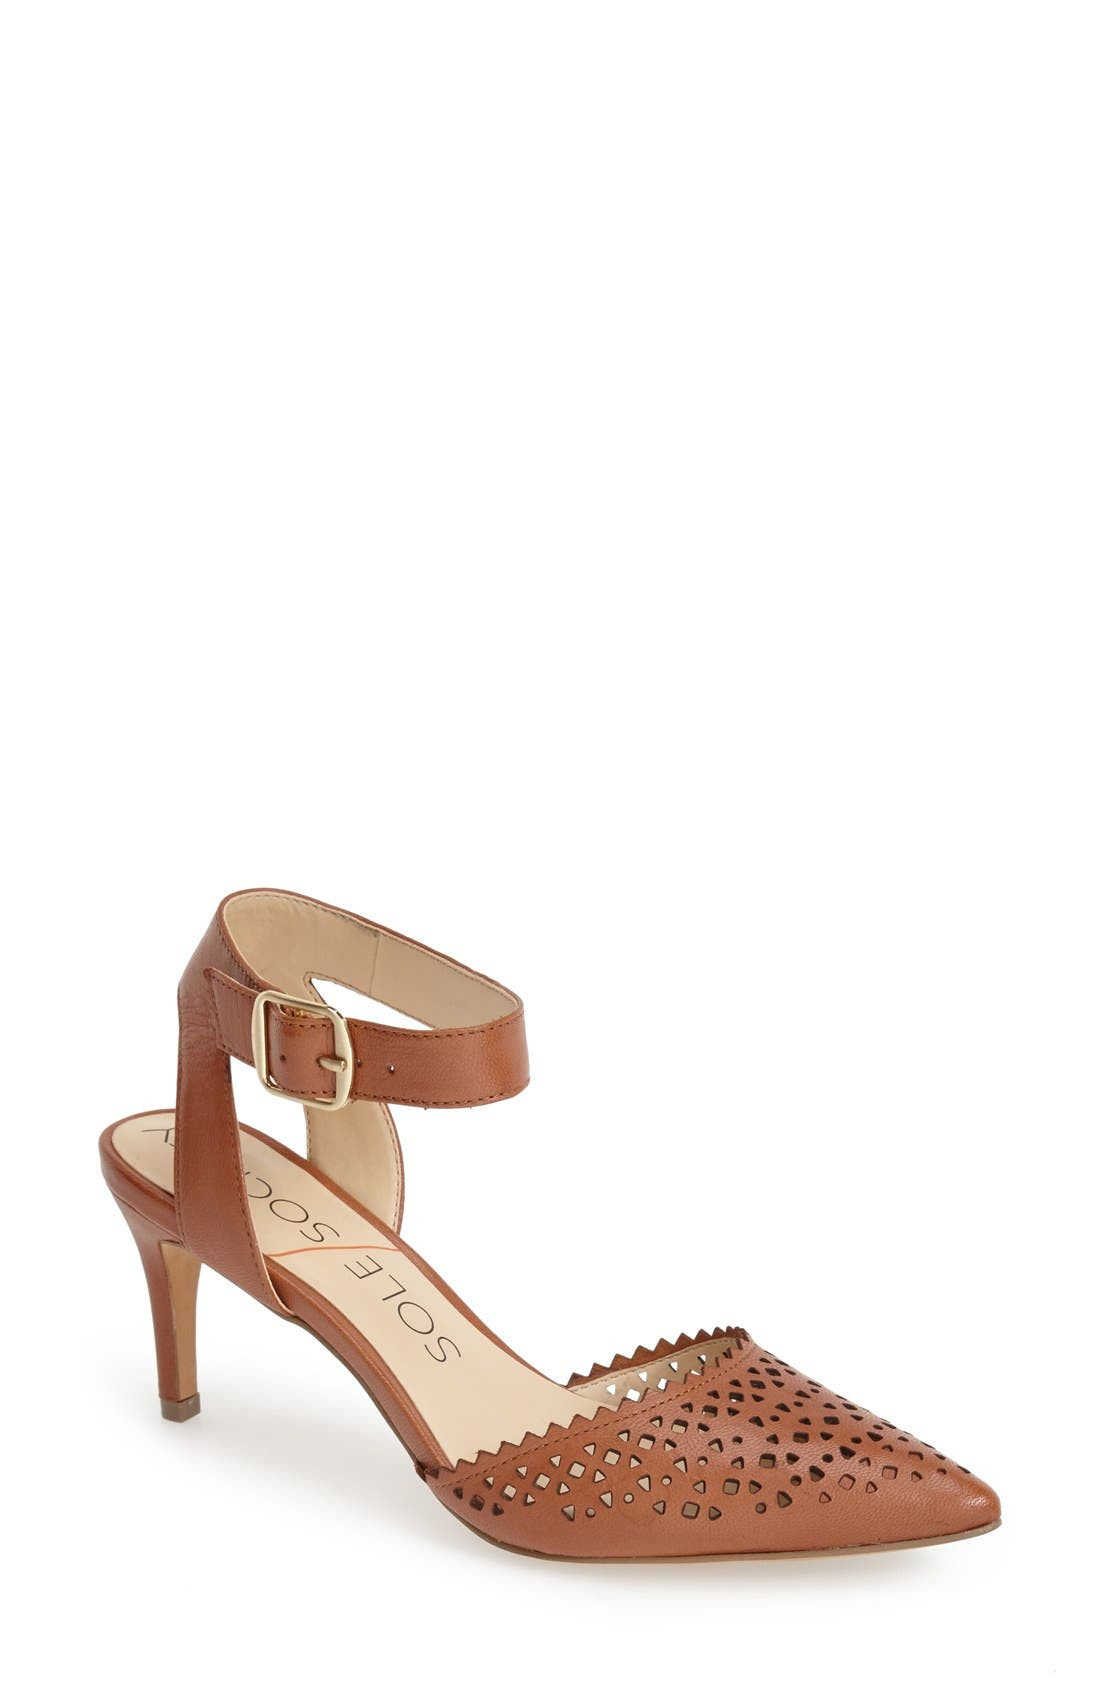 'Emma' Ankle Strap Pump,                             Main thumbnail 1, color,                             Light Luggage